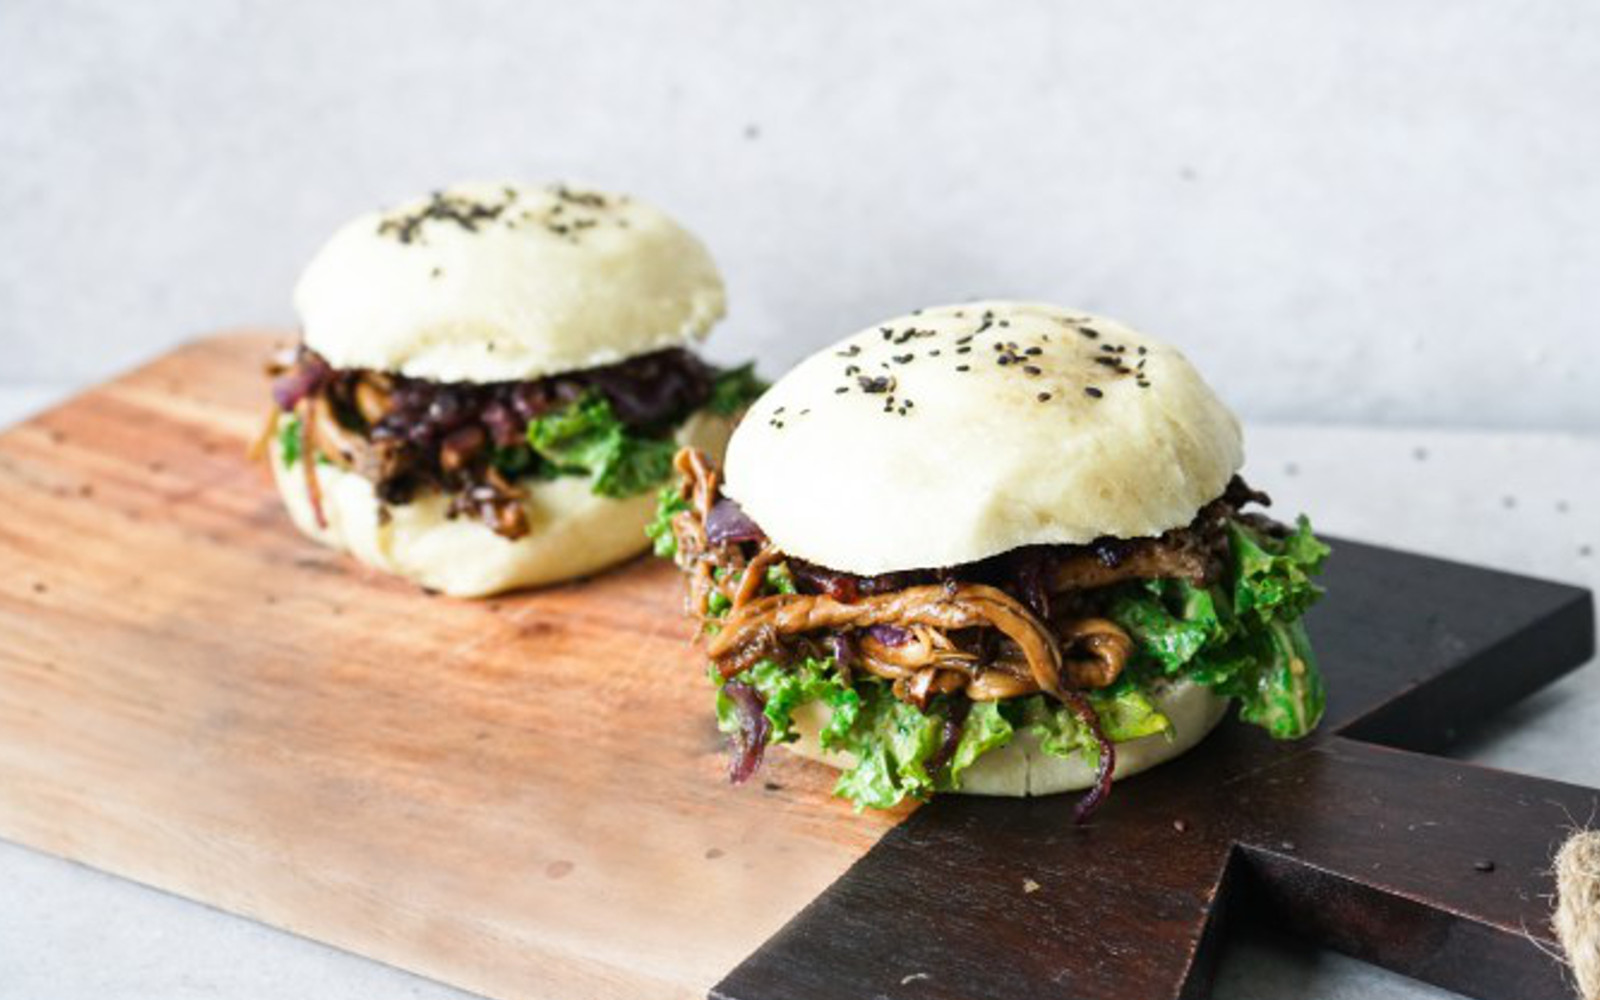 Pulled Oyster Mushroom Bao Burger Vegan Gluten Free One Green Planet